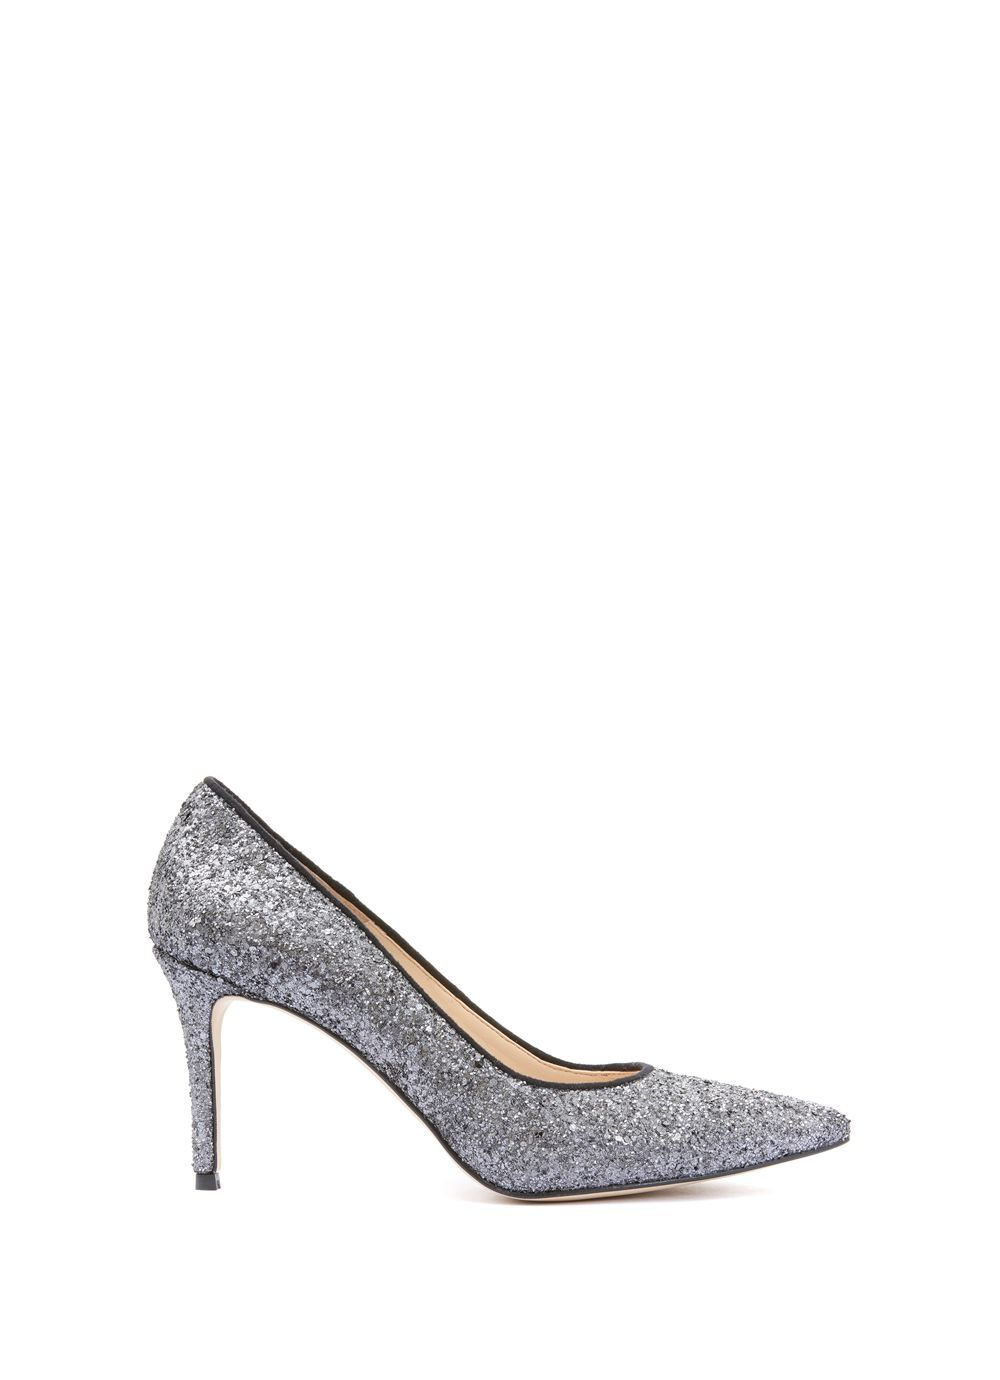 Glitter Rihanna Court, Metallic - predominant colour: silver; occasions: evening, occasion; material: leather; embellishment: glitter; heel: stiletto; toe: pointed toe; style: courts; finish: metallic; pattern: plain; heel height: very high; season: a/w 2016; wardrobe: event